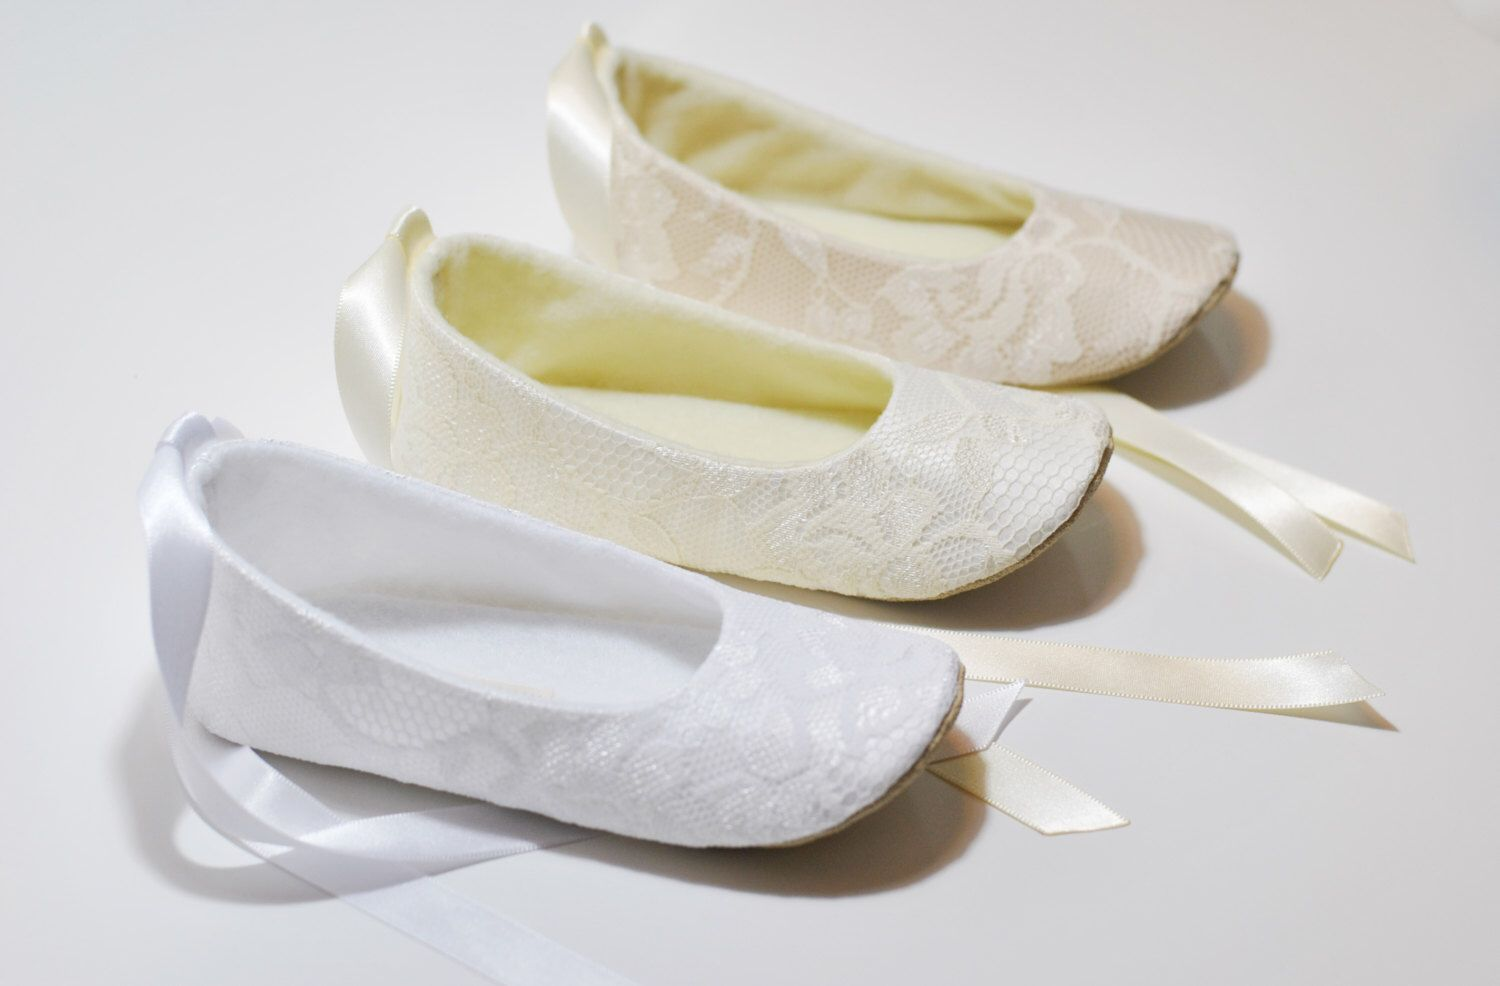 80f0fcbfc Ivory or White or Nude Lace Ballet Slippers - Flower Girl Shoes ...